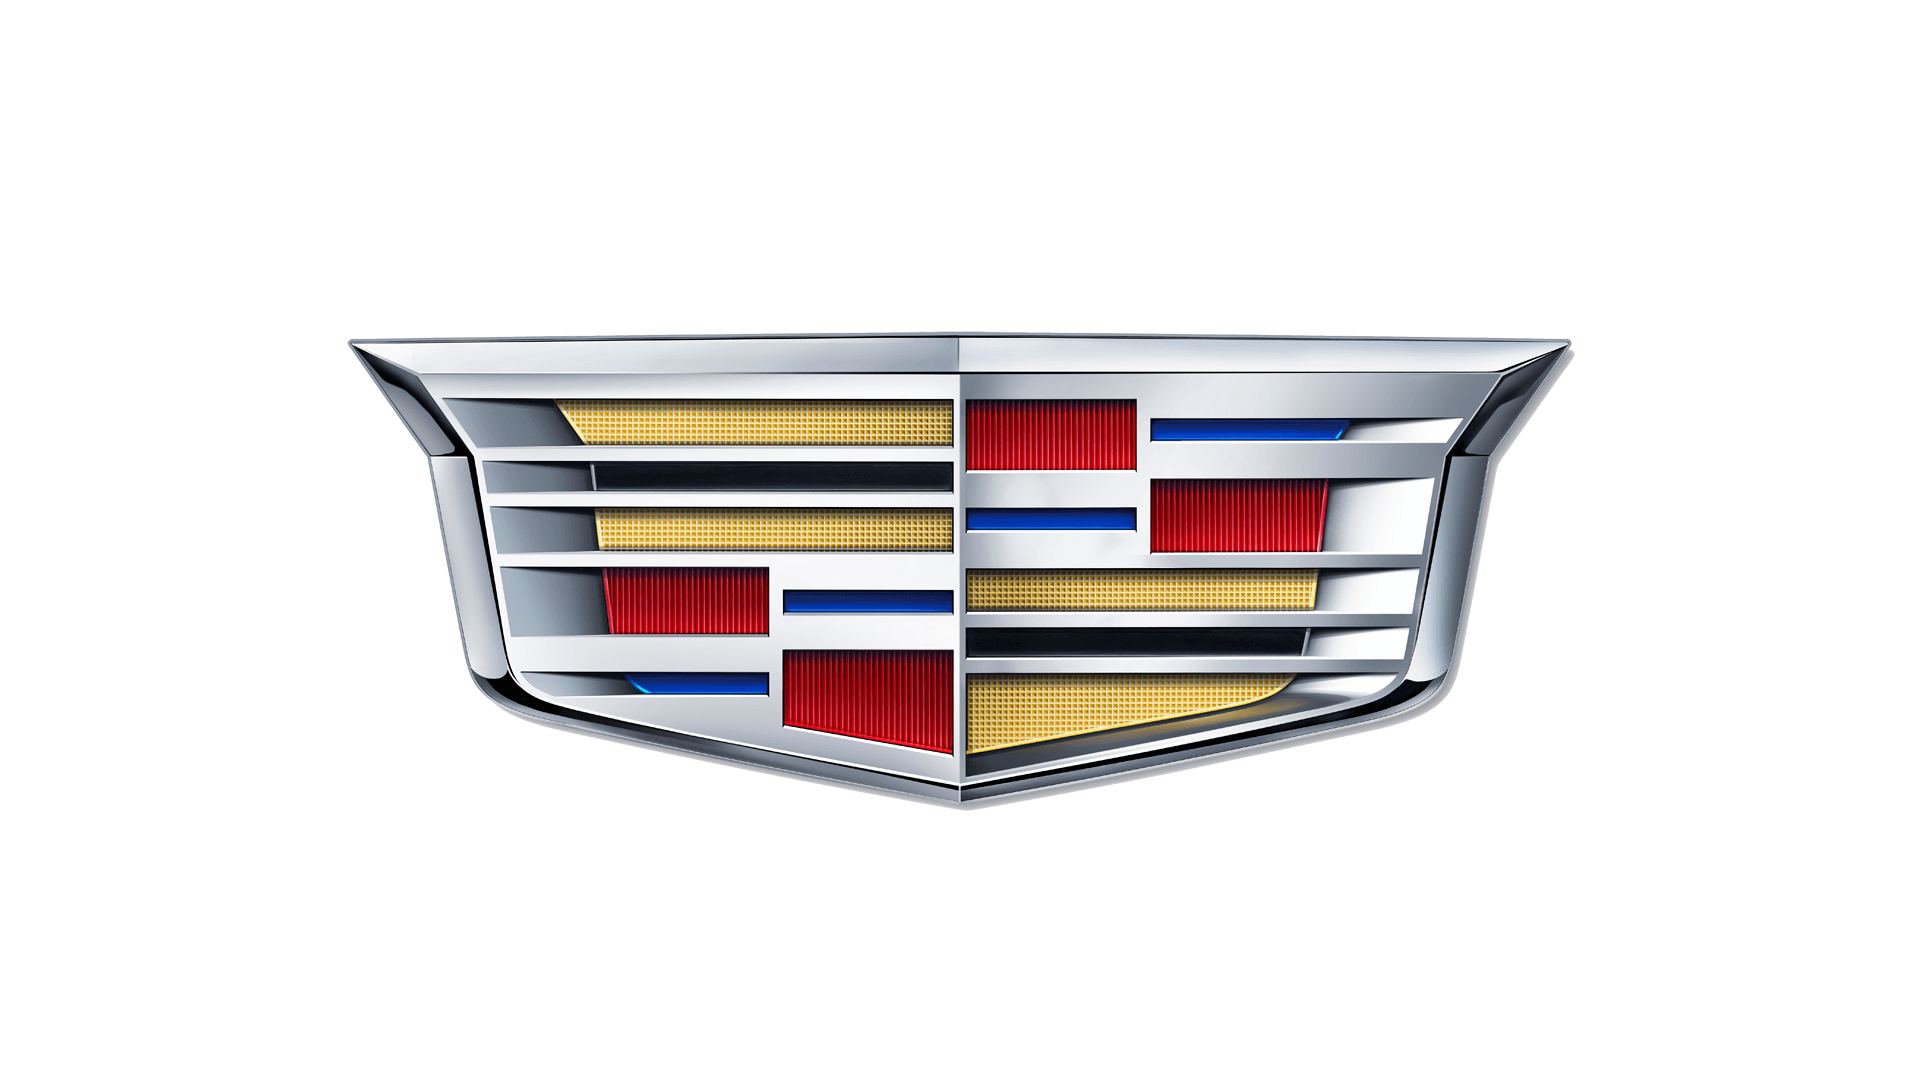 http://rpmautolease.com/wp-content/uploads/2017/08/Cadillac-logo-2014-1920x1080.png